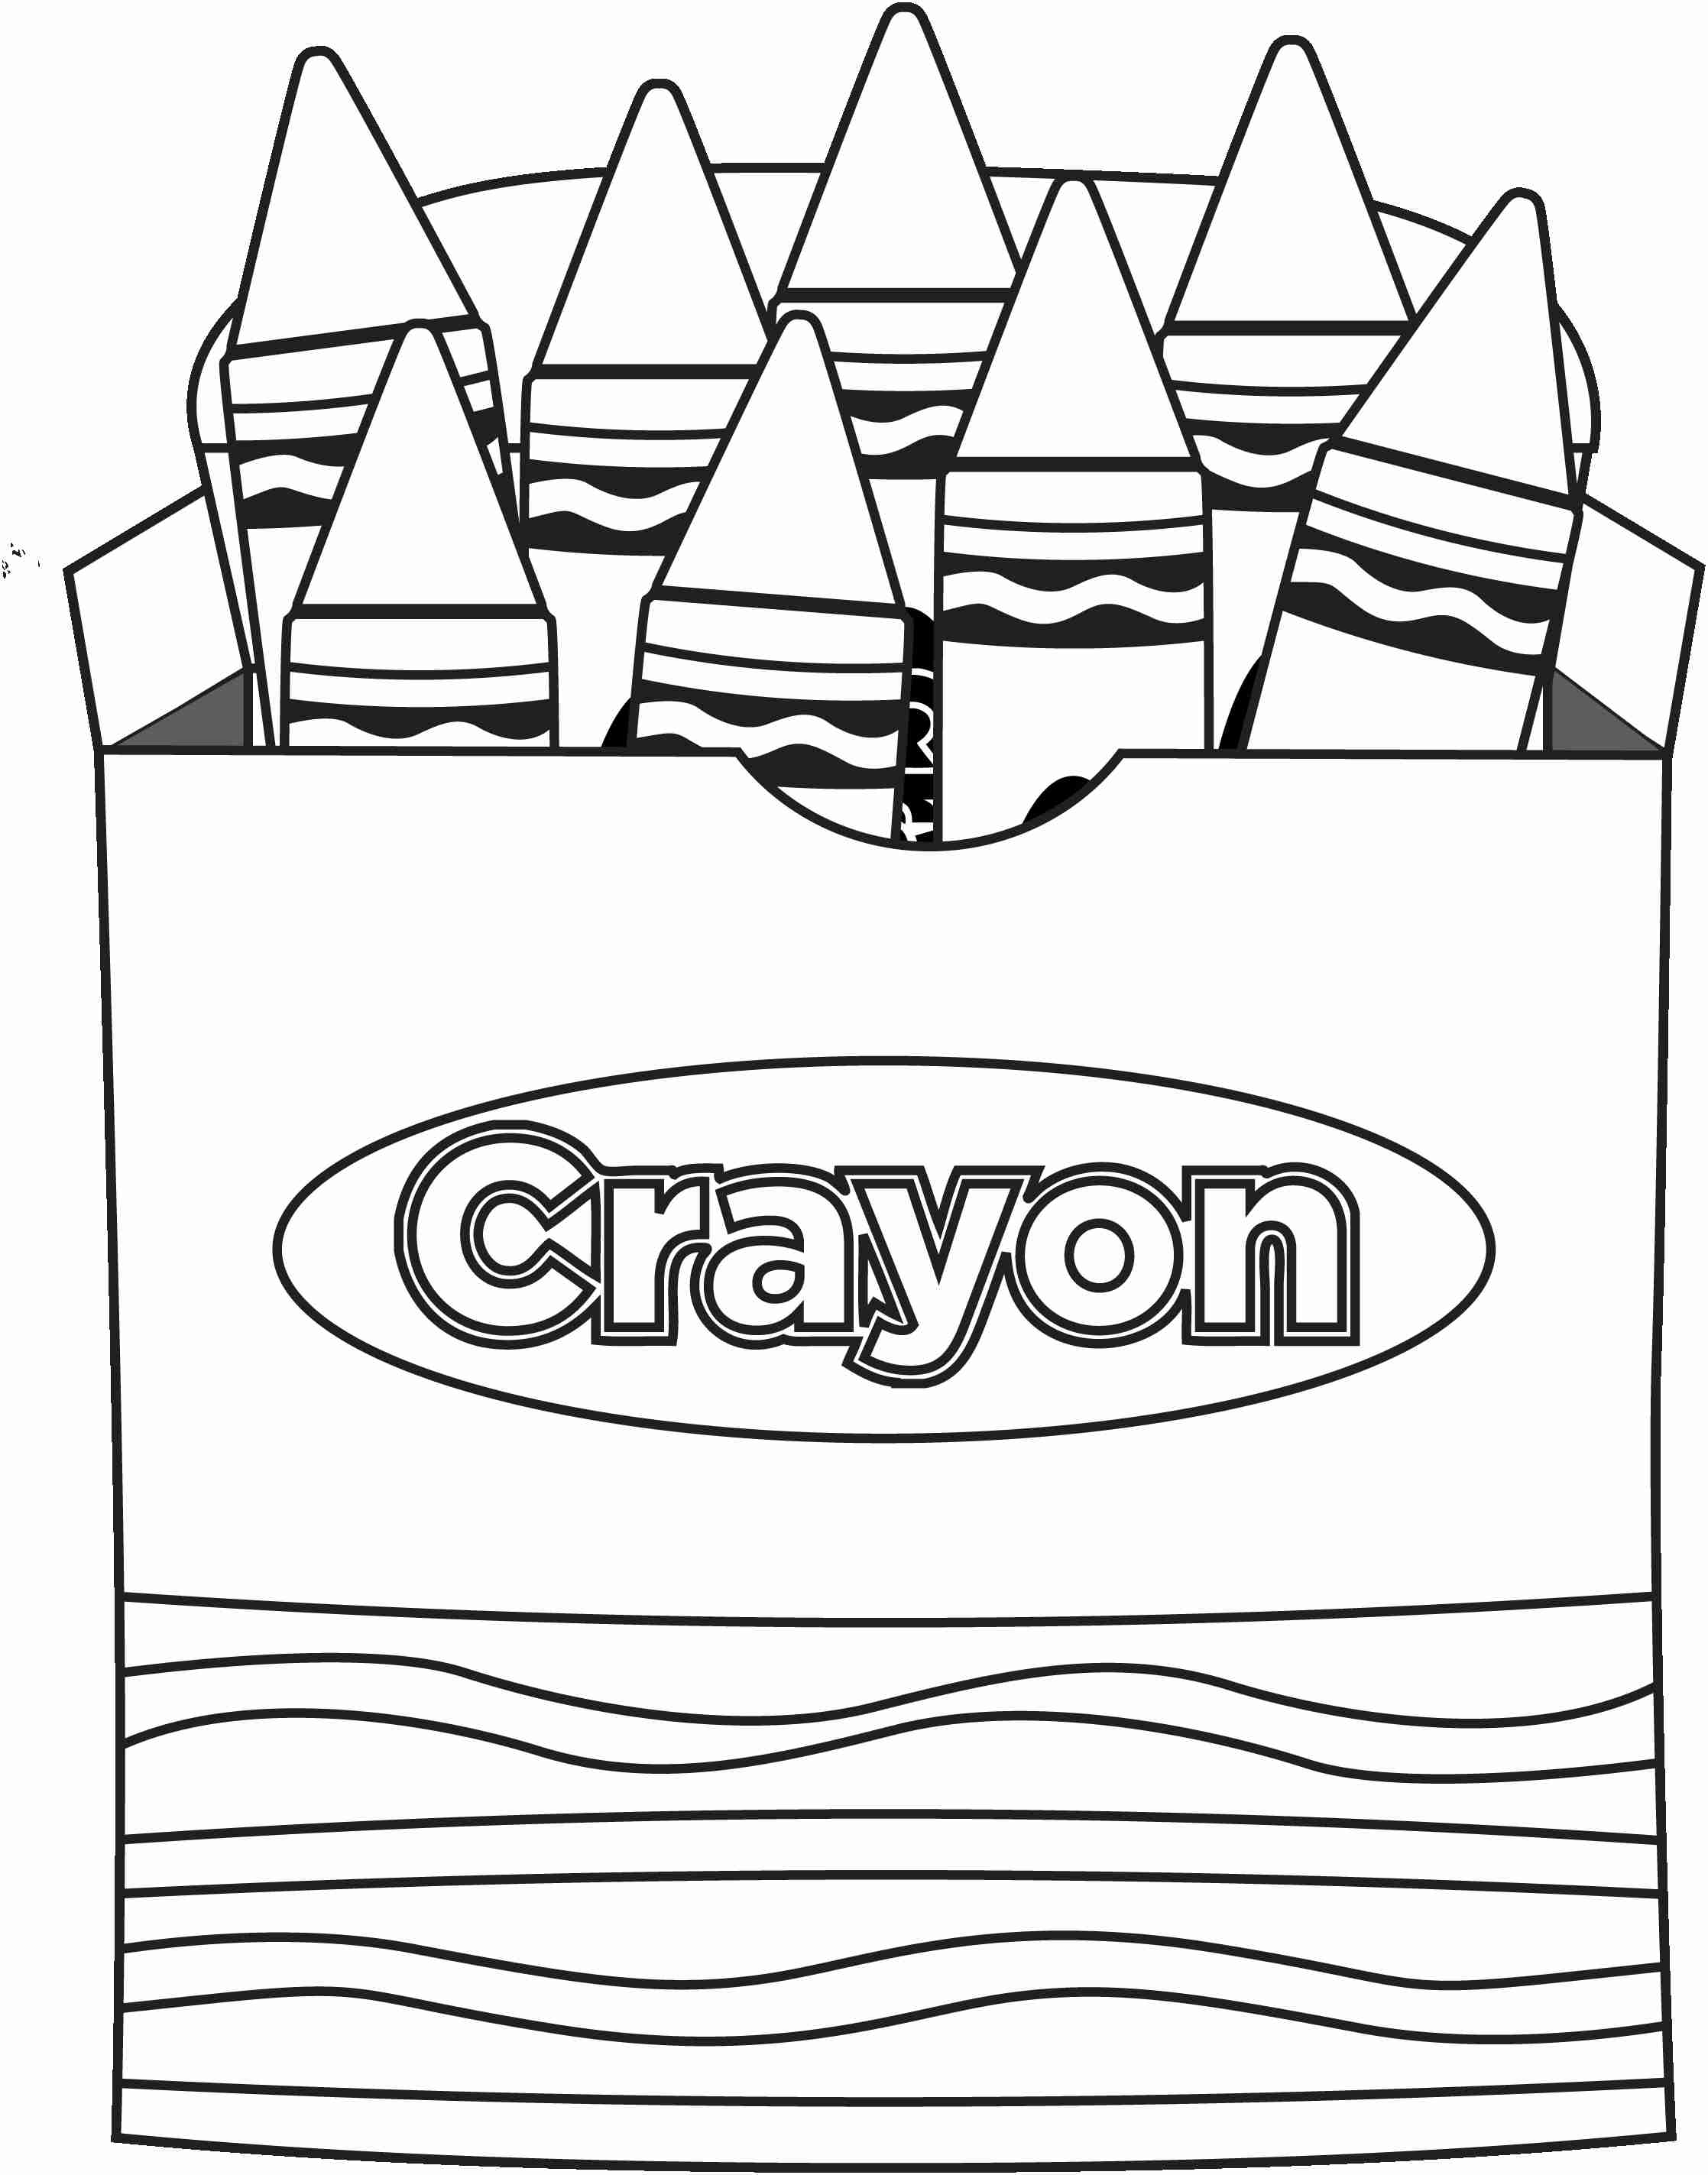 2235x2846 Crayon Clipart Colouring Page Pencil And In Color Throughout Box